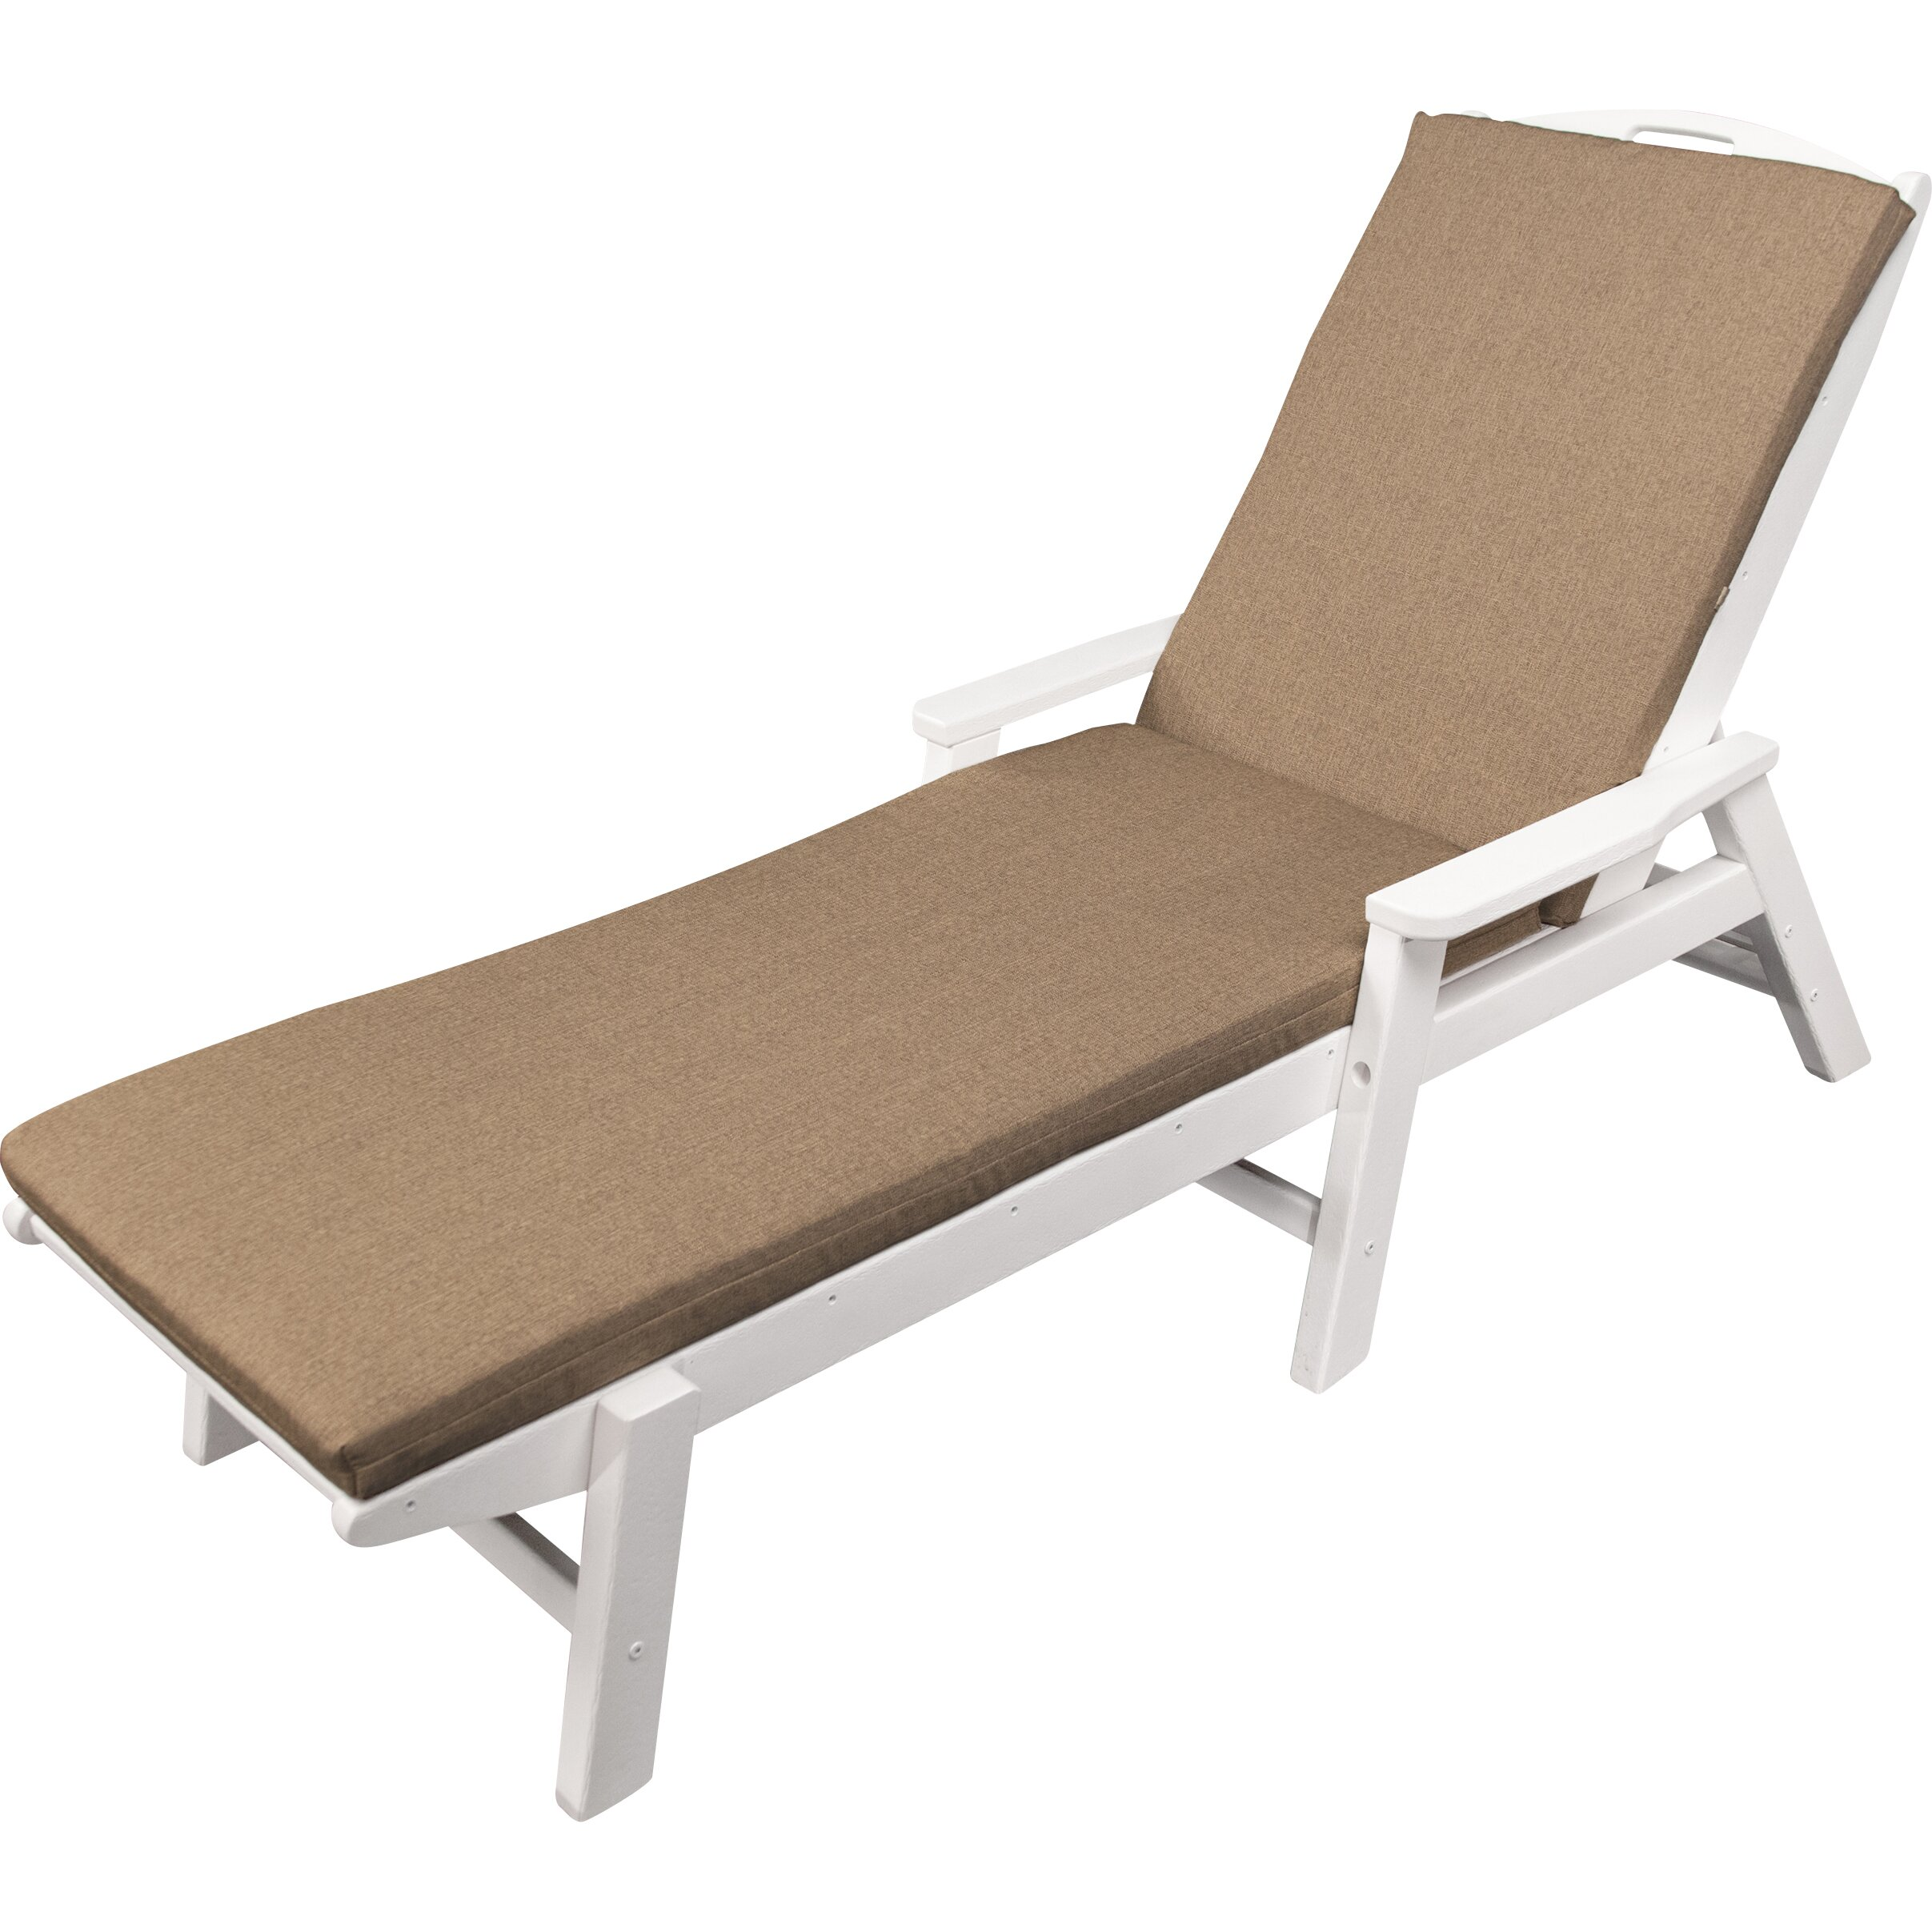 Ateeva outdoor sunbrella chaise lounge cushion reviews for Chaise cushions on sale